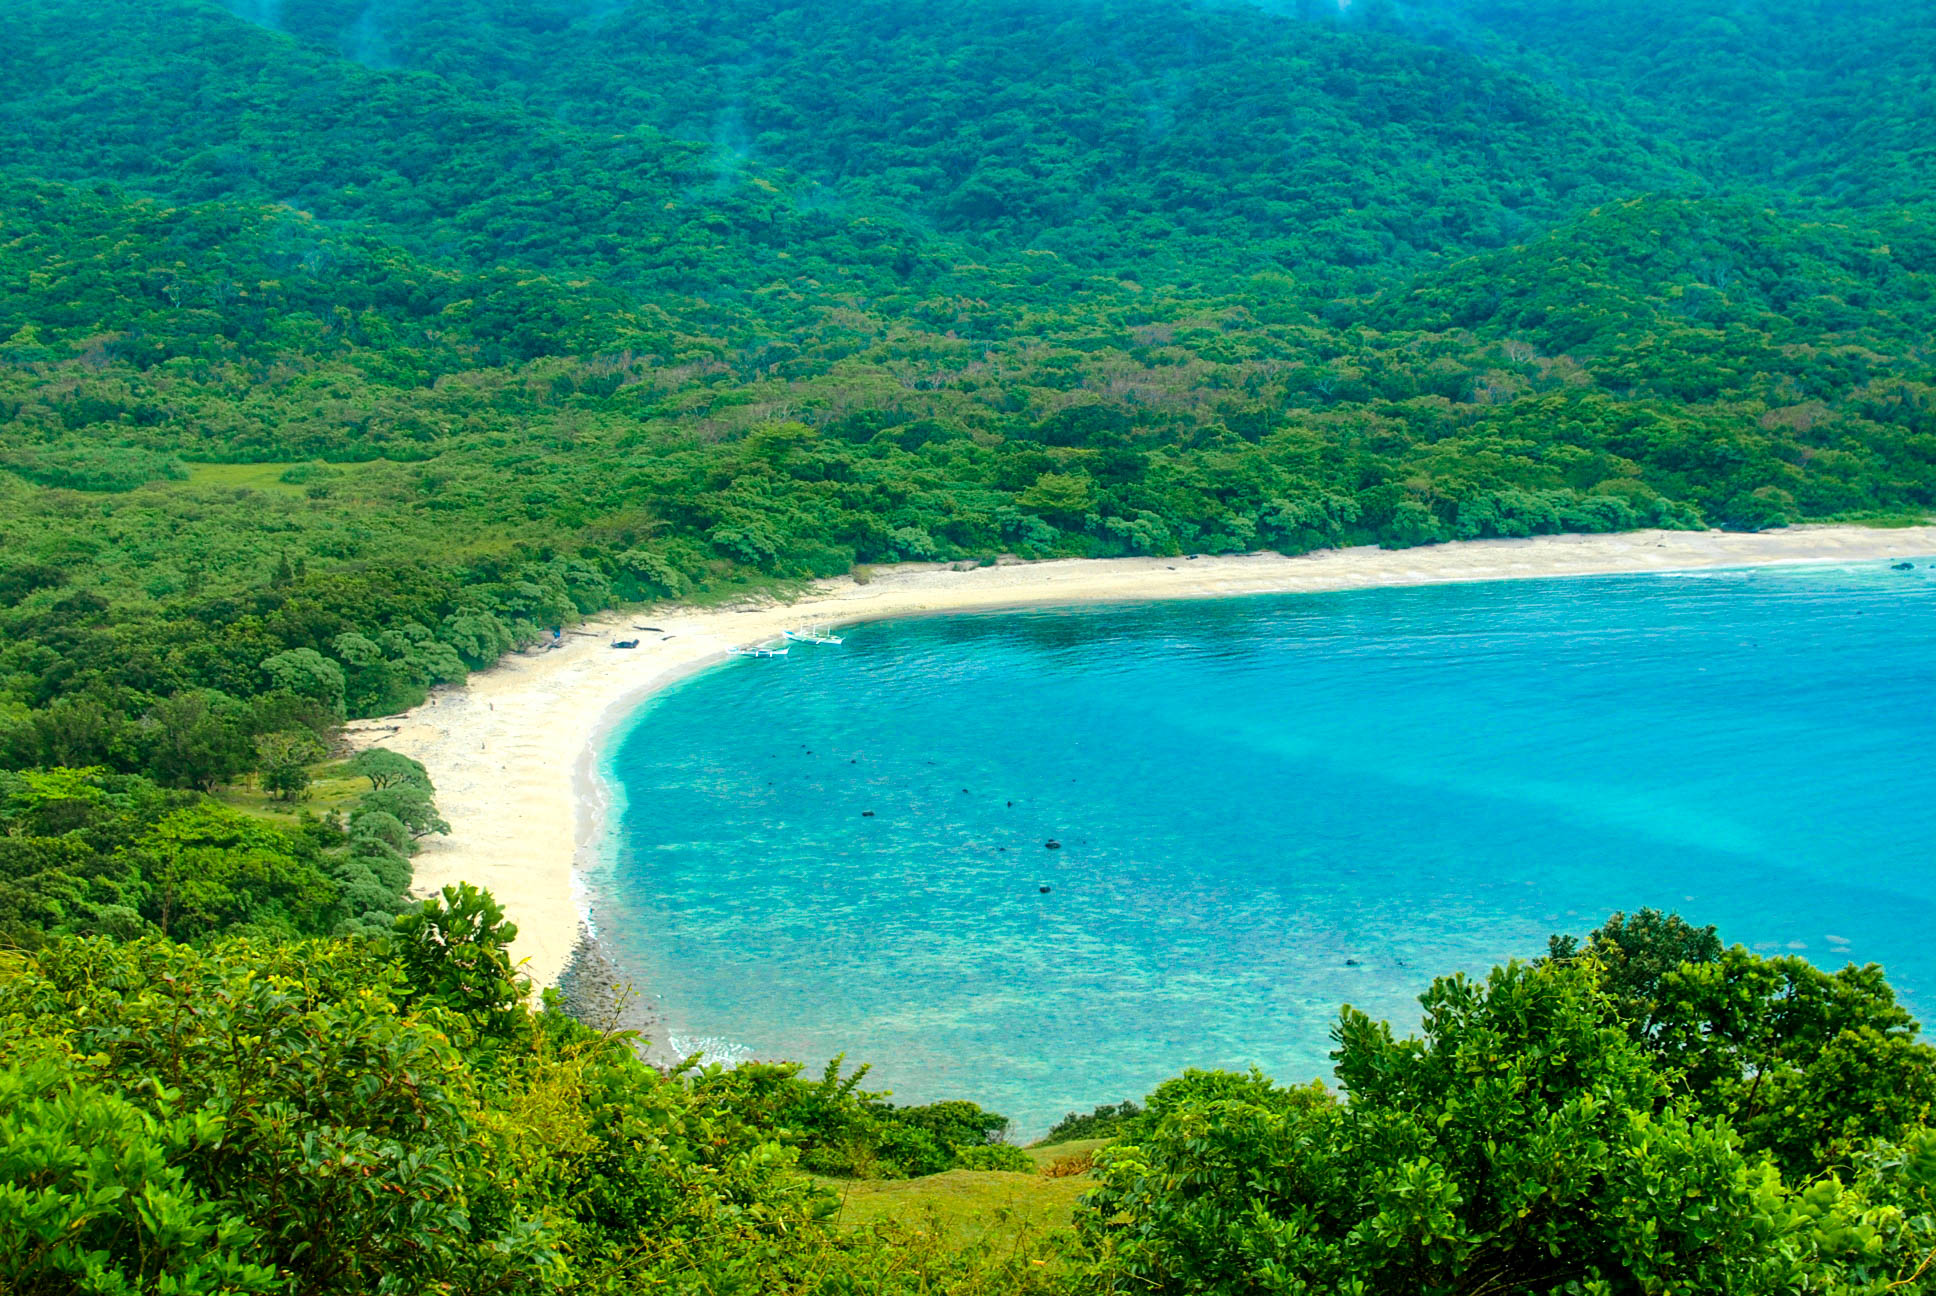 View of a white sand beach fronting turquoise waters and backed by forests and mountains in Palaui, Philippines